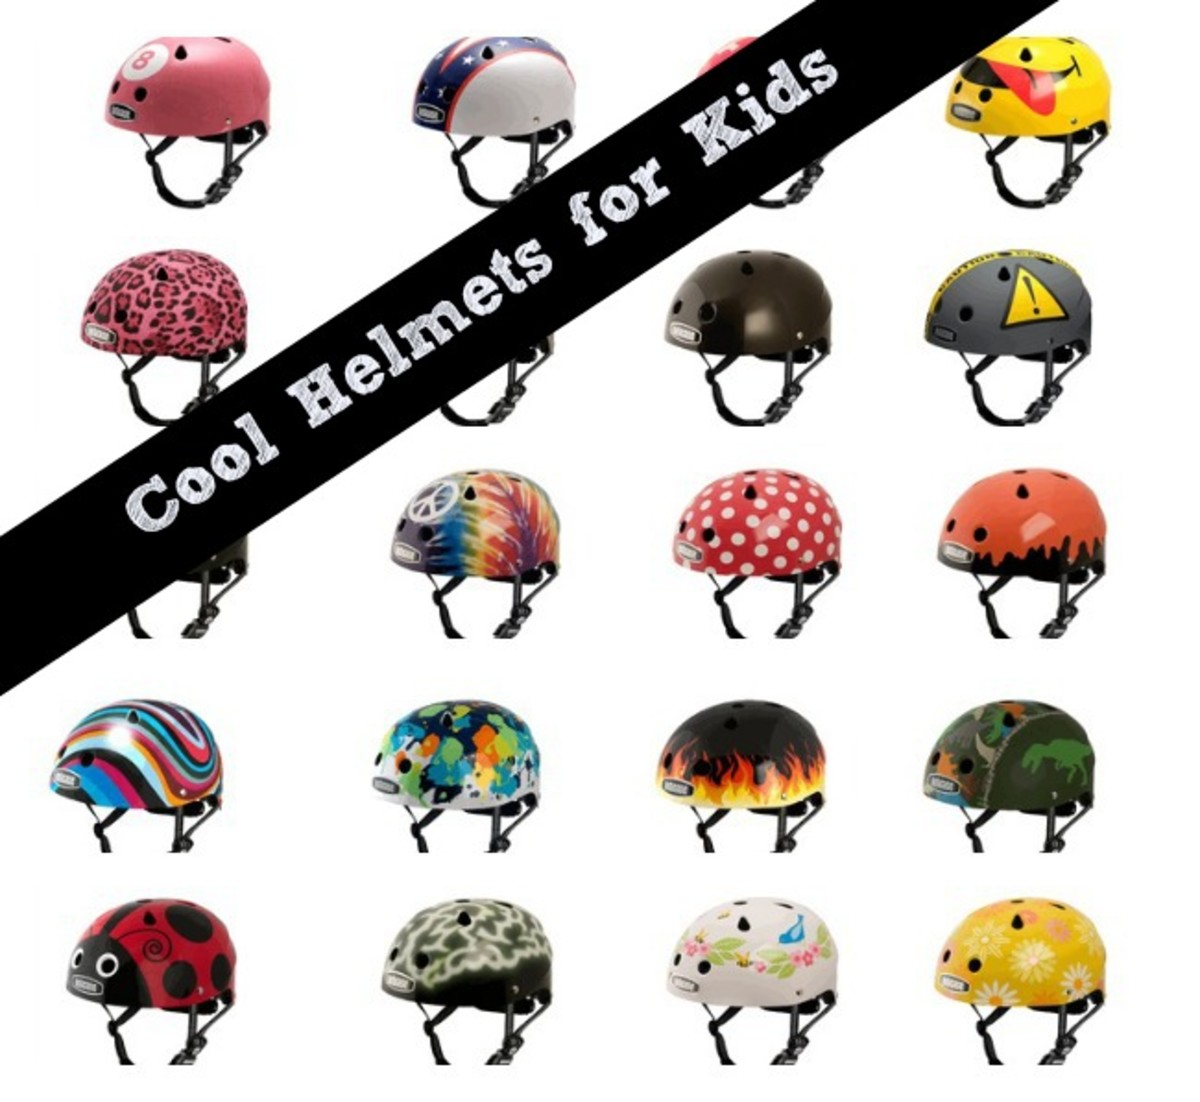 cool helmets for kids